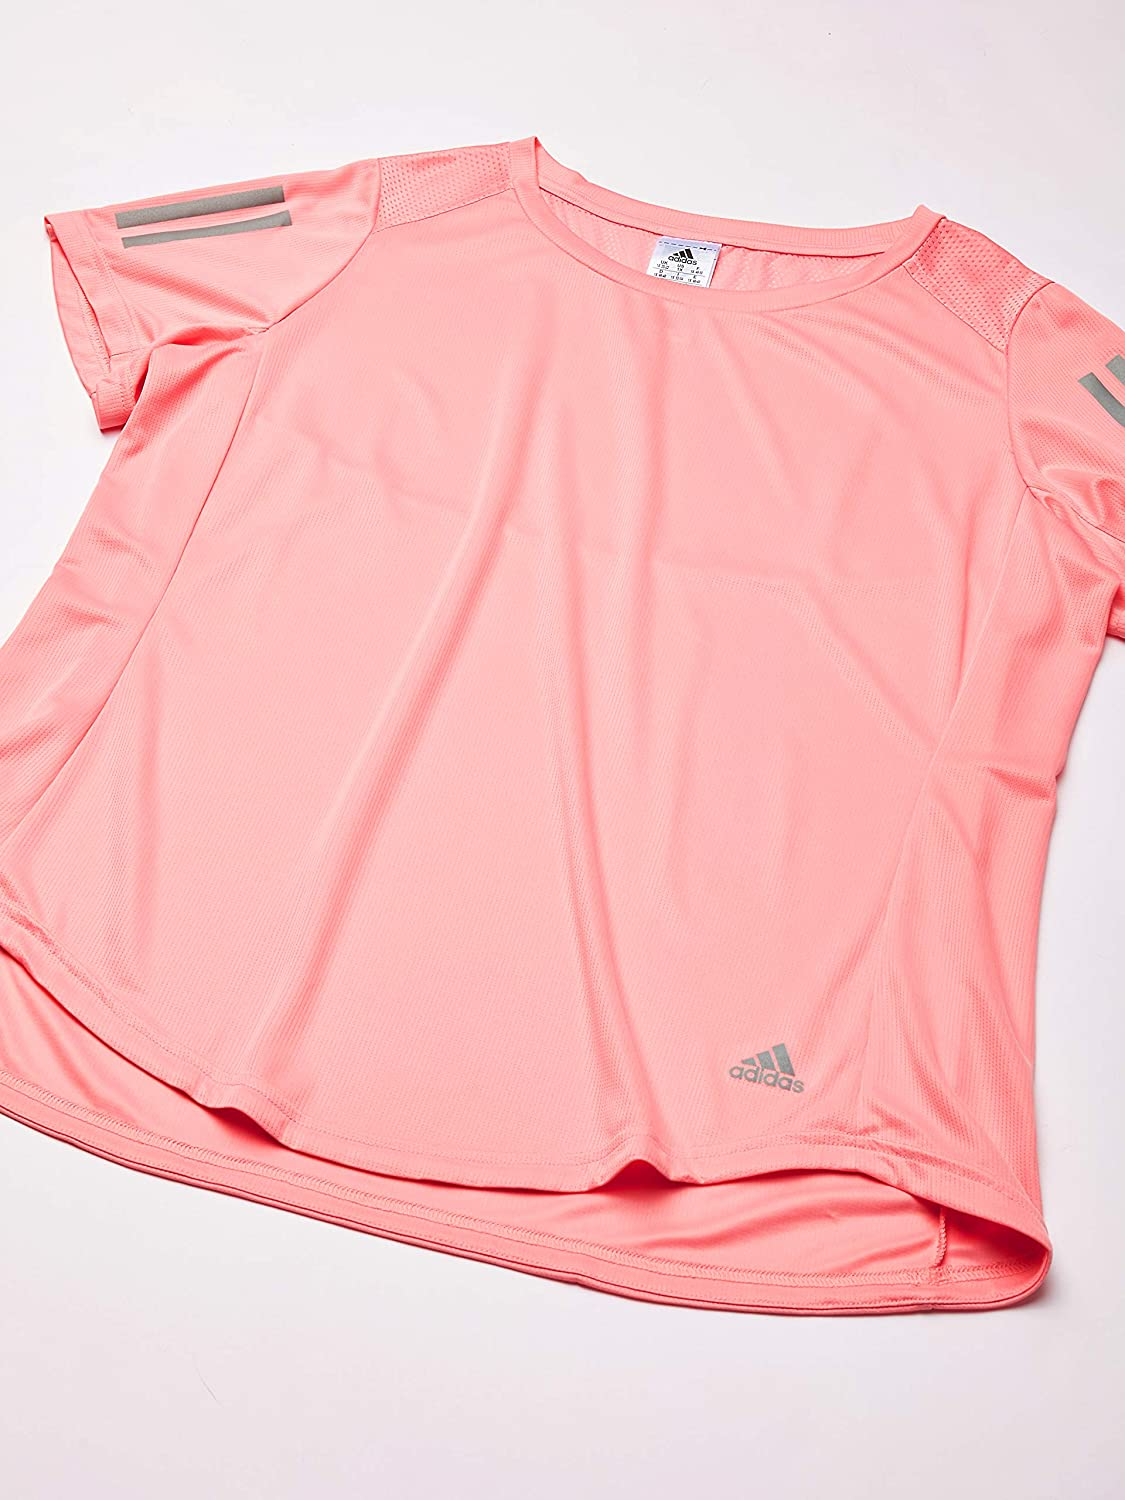 adidas Own The Run tee Camiseta de Manga Corta Mujer: Amazon.es: Deportes y aire libre